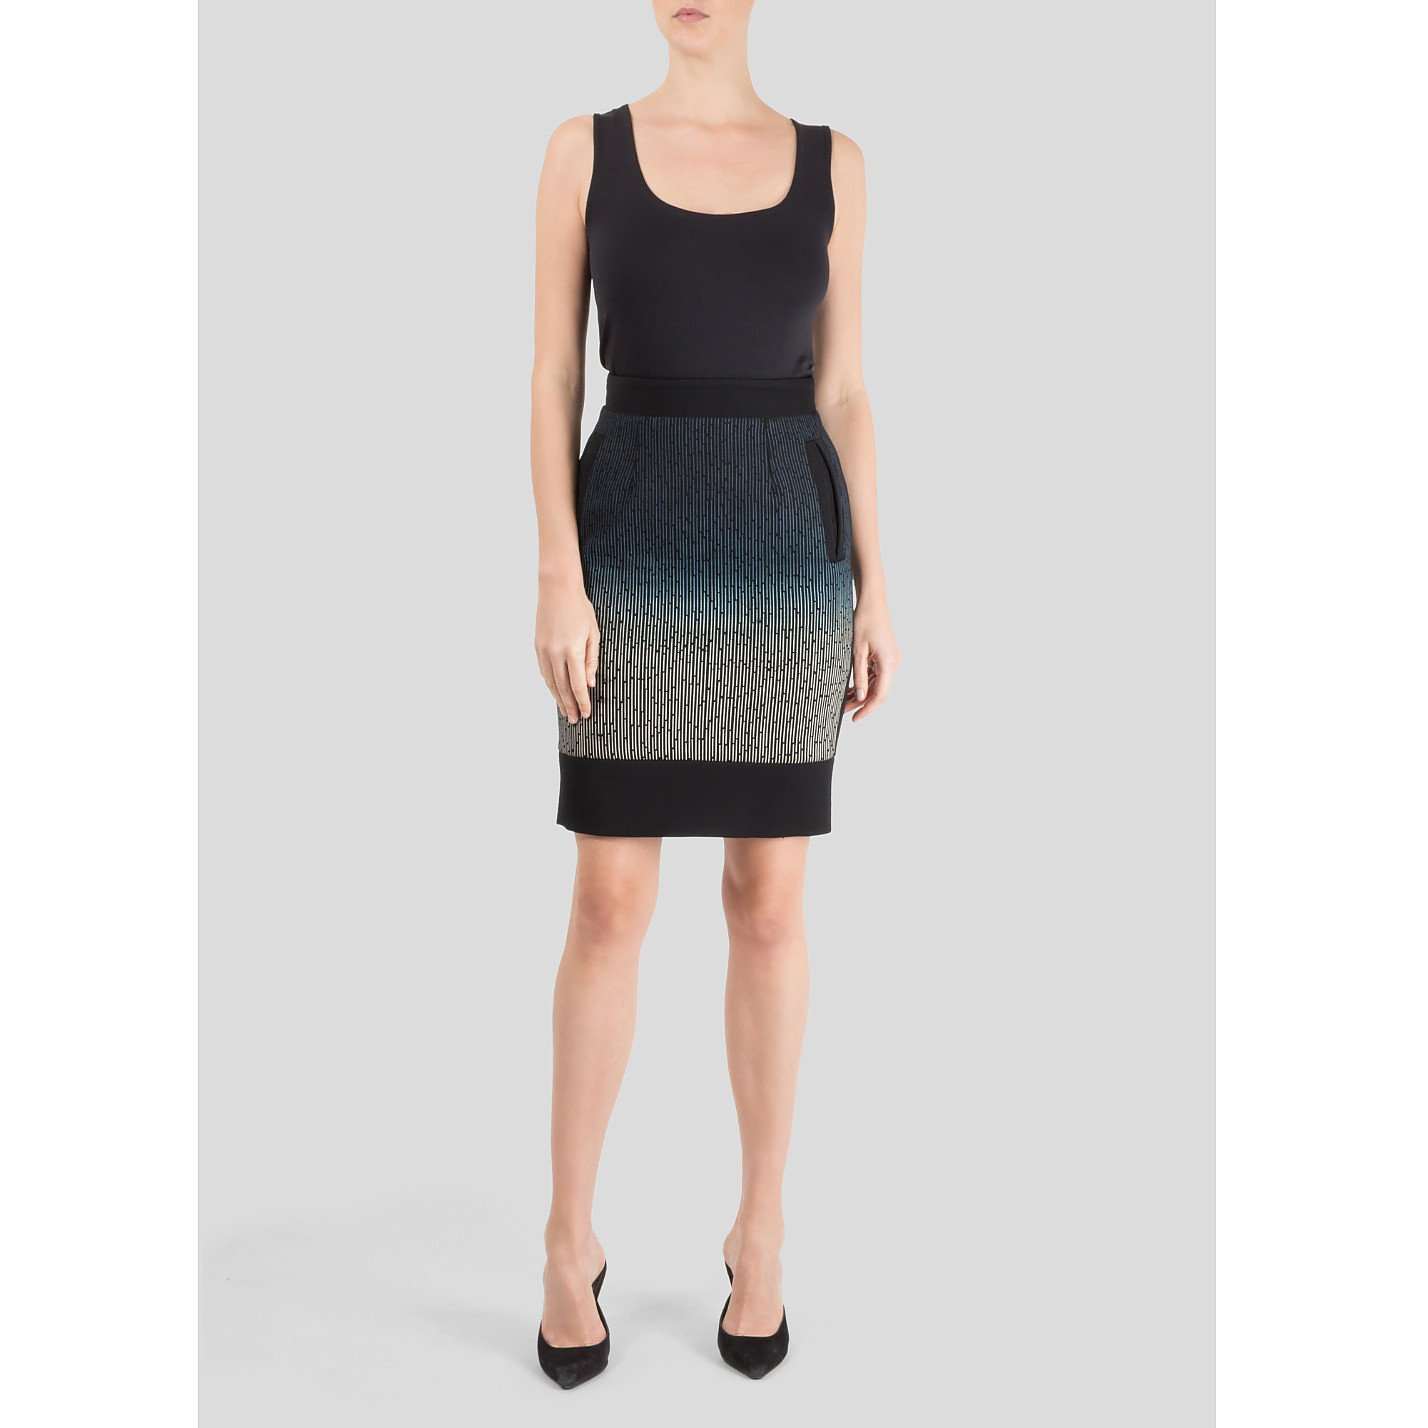 Jonathan Saunders Ombré Stripe Pencil Skirt